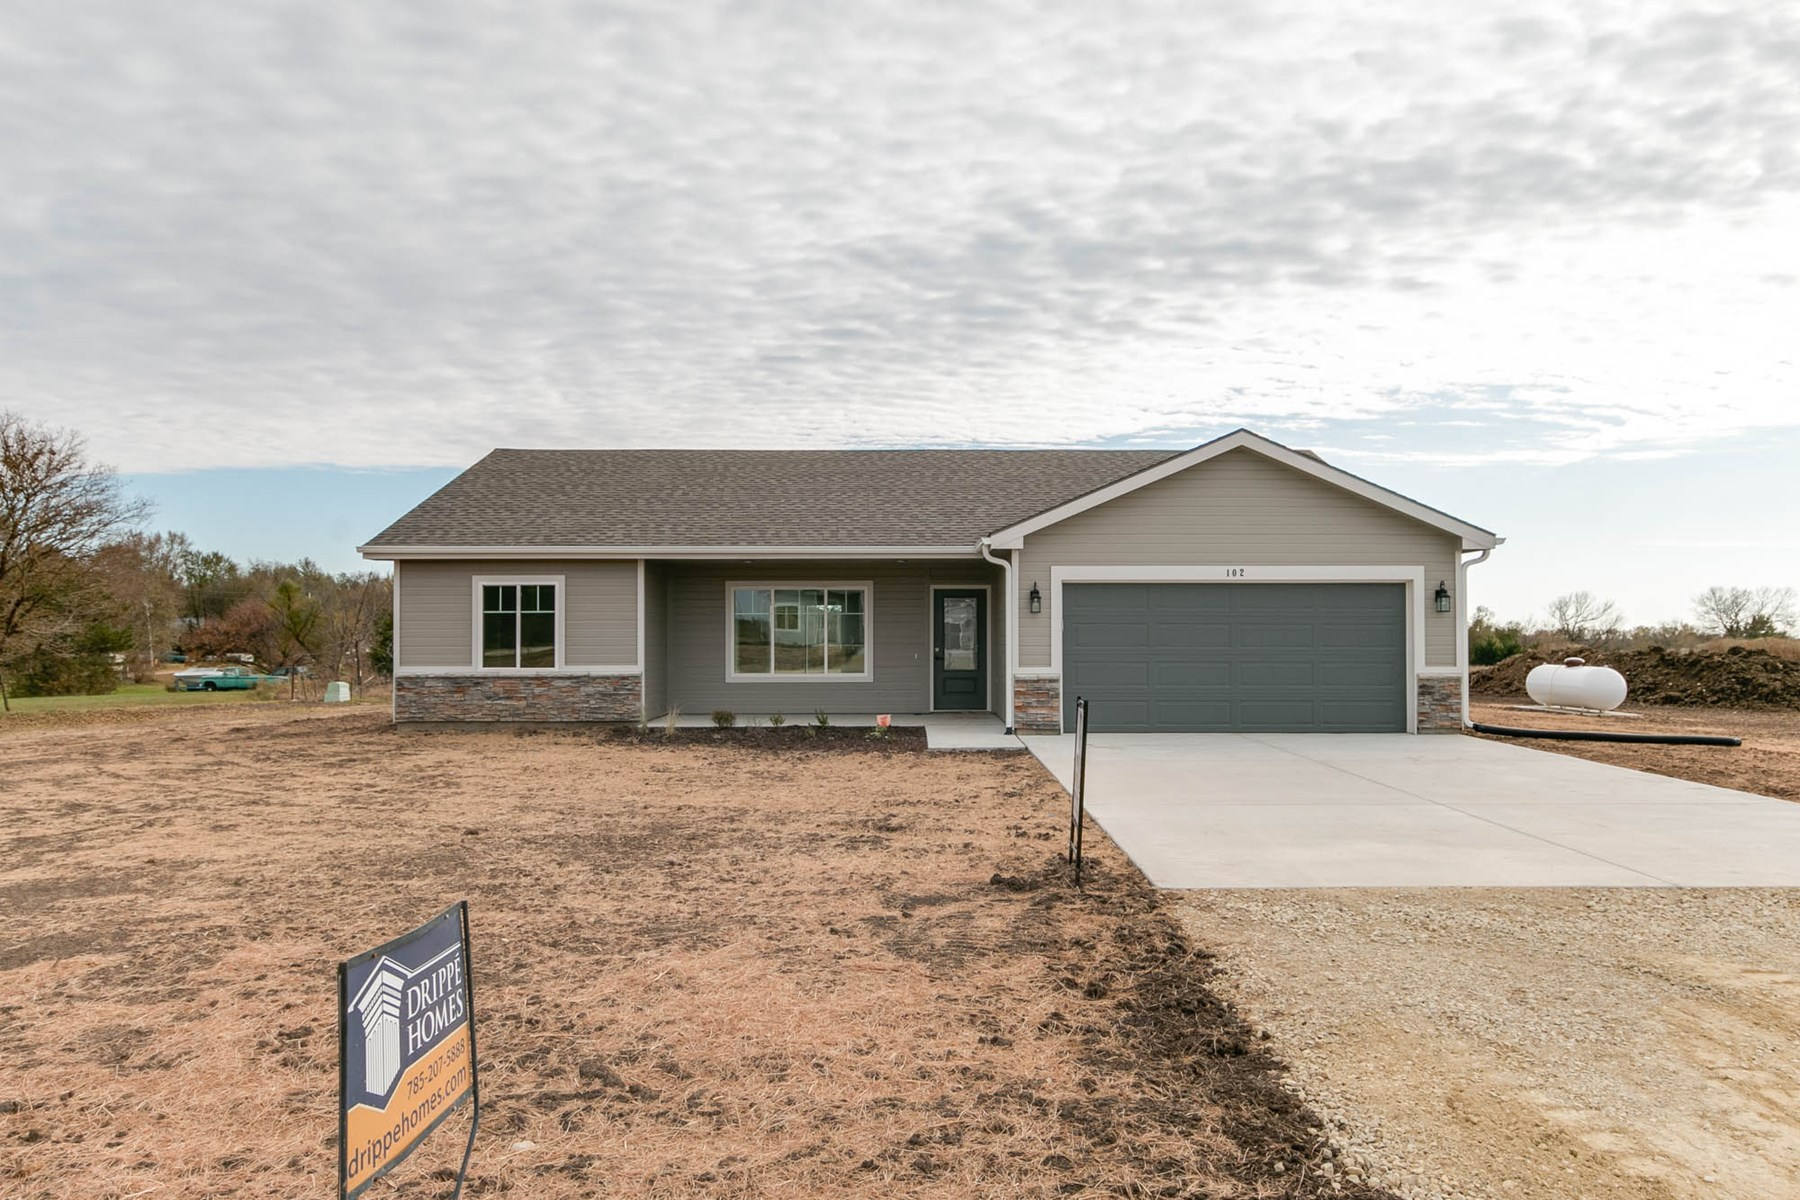 Olsburg Kansas New Construction Home For Sale - No Specials!